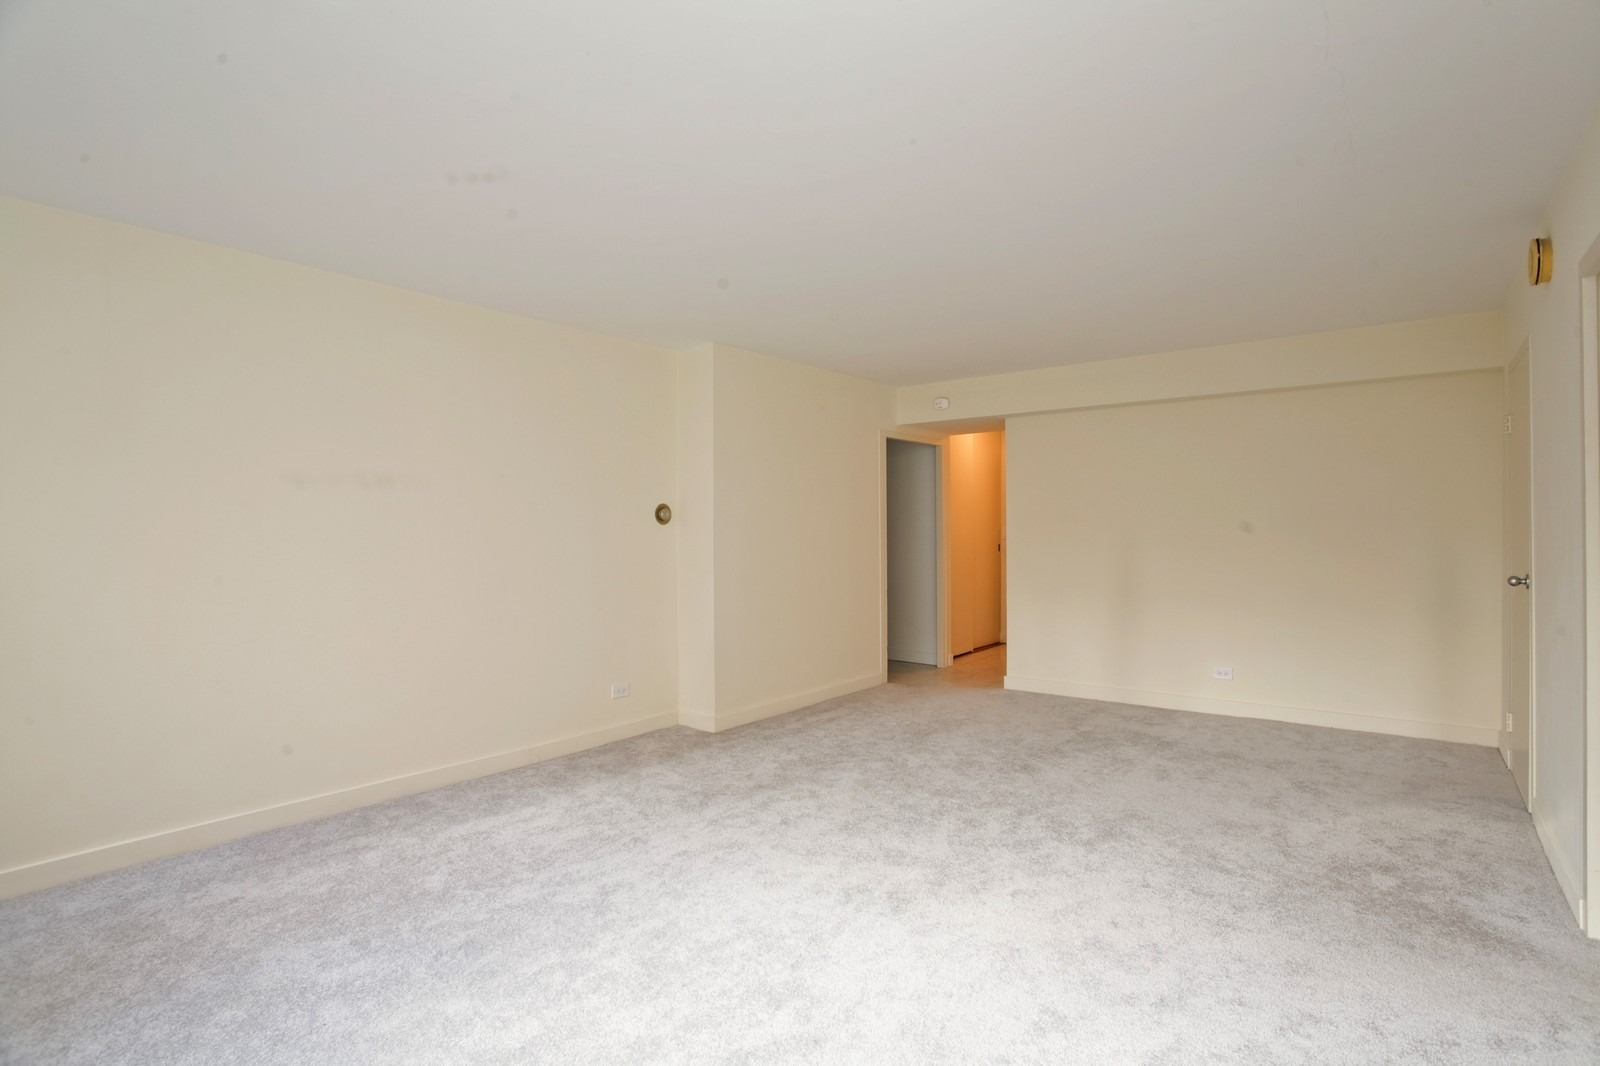 Real Estate Photography - 253 E Delaware, Apt 10F, Chicago, IL, 60611 - Location 1